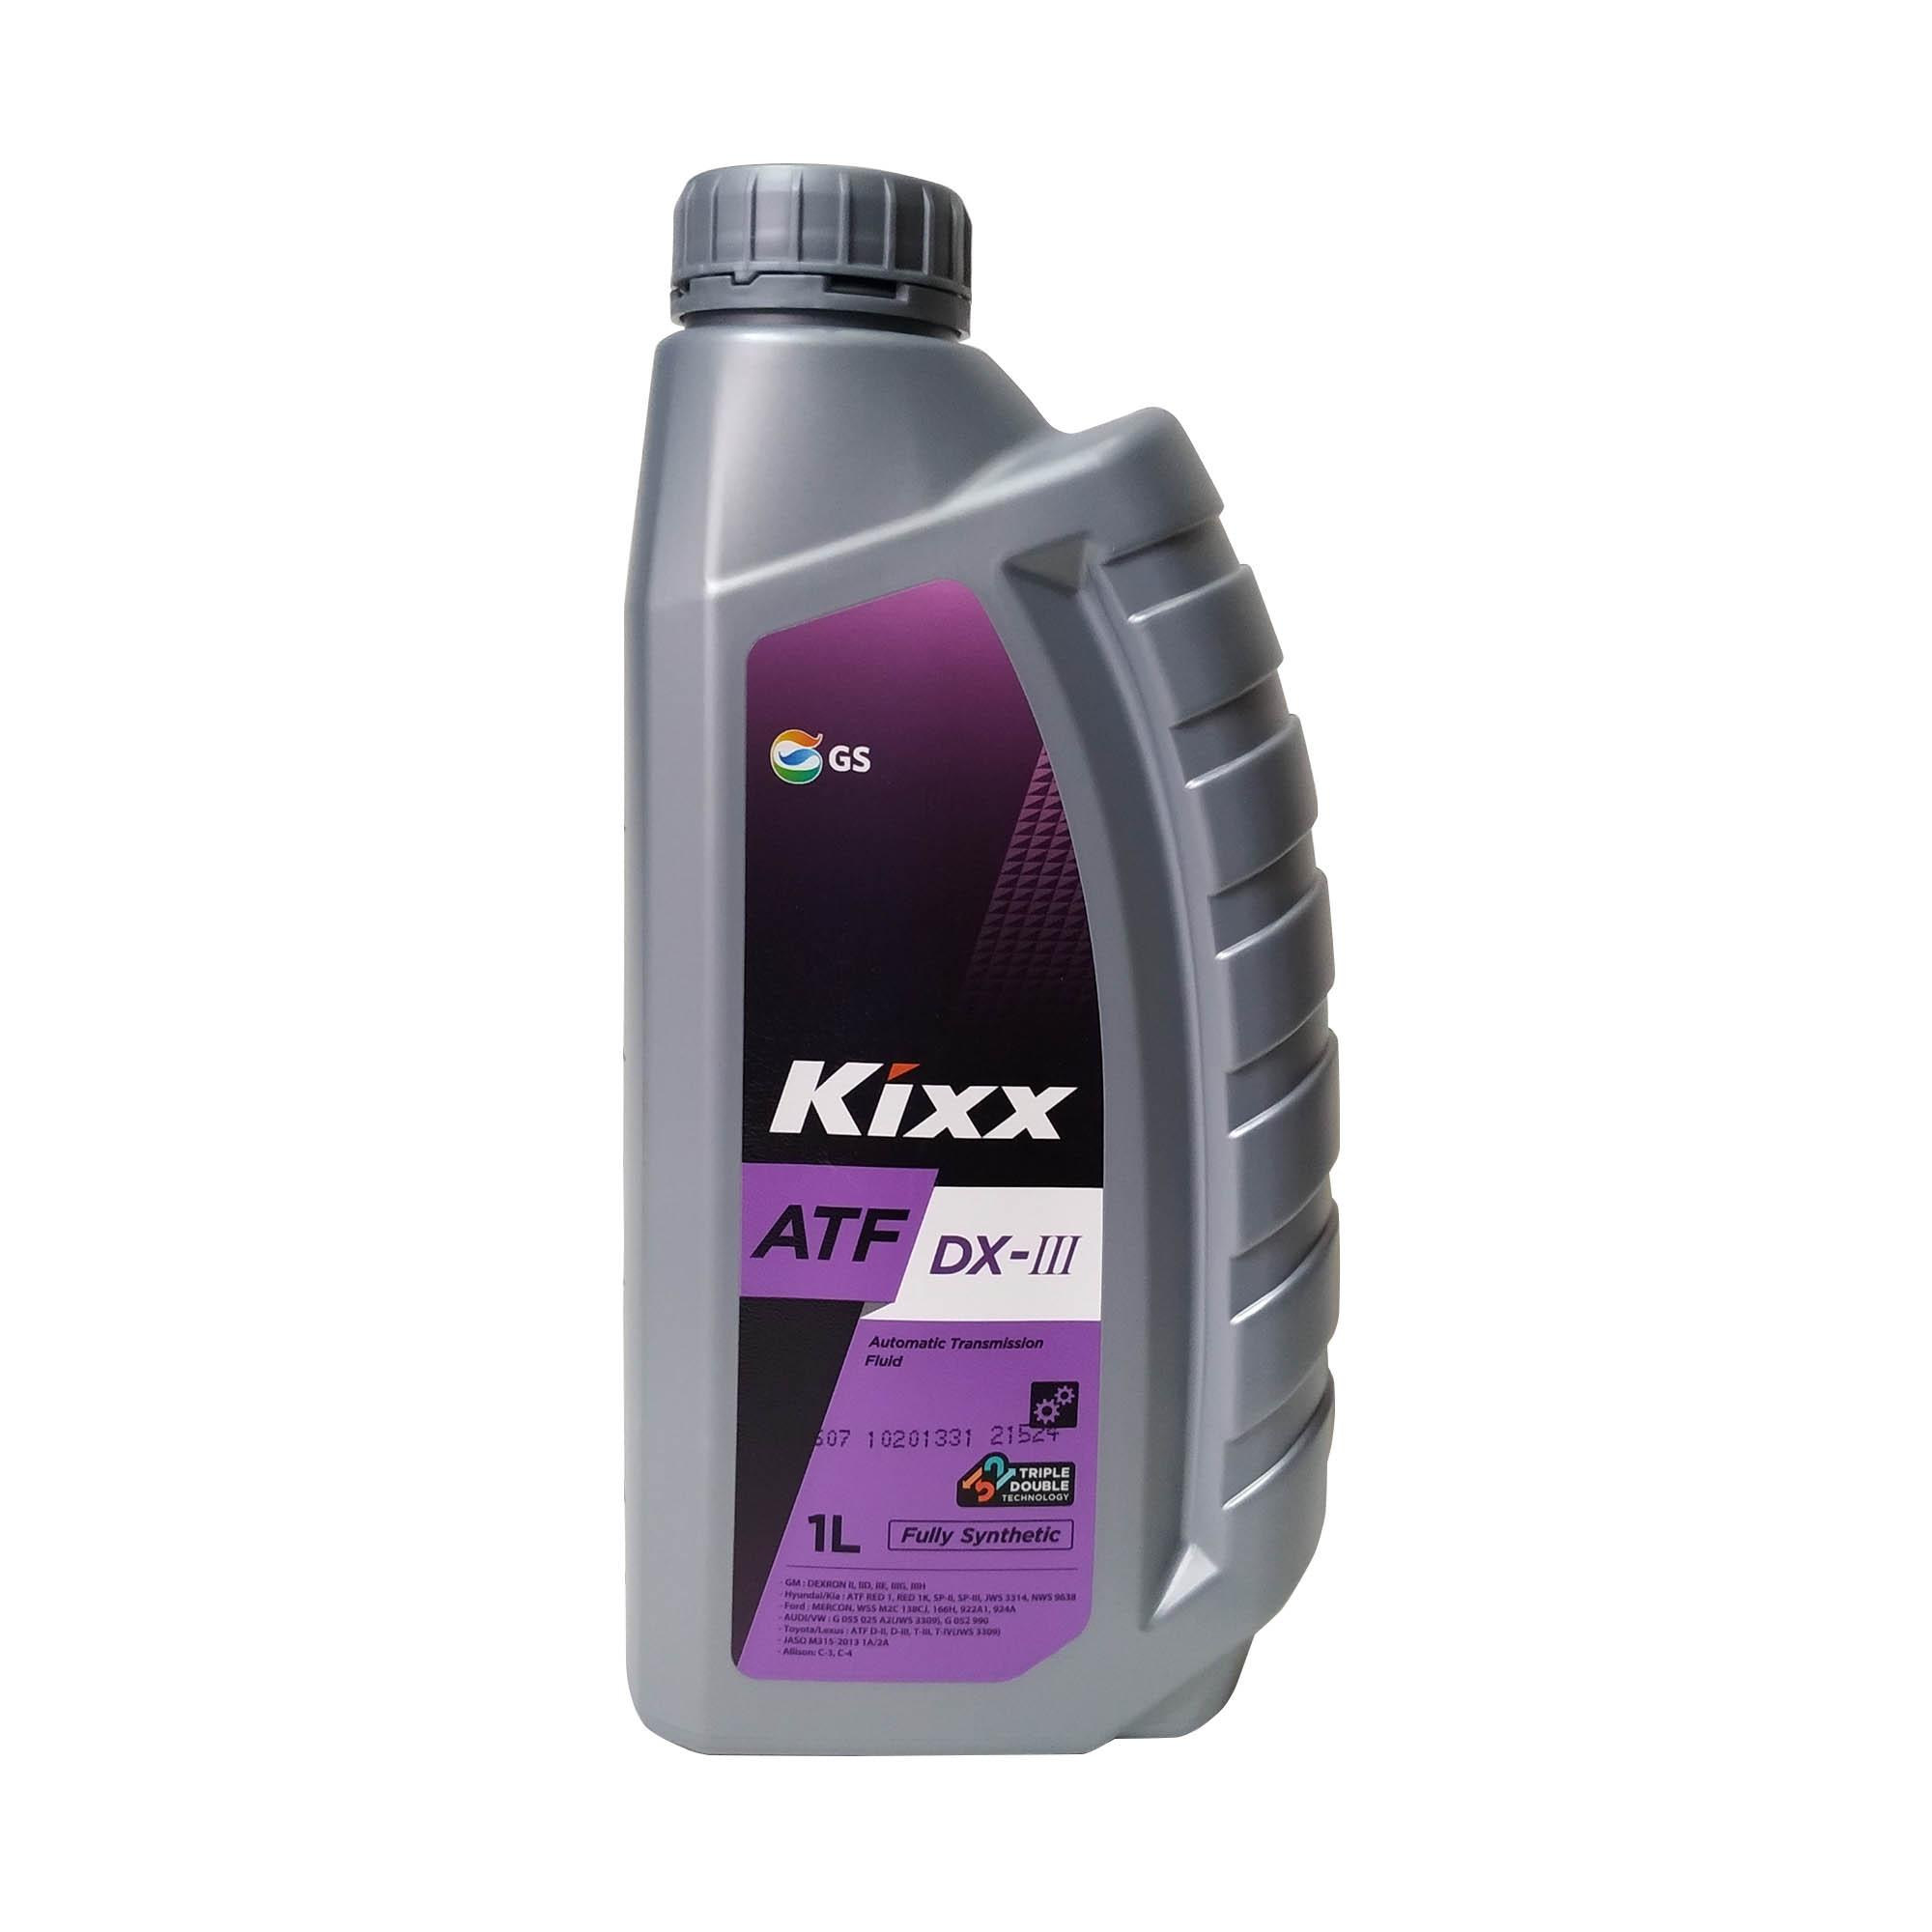 KIXX ATF DX-III Fully Synthetic Automatic Transmission Fluid / Power  steering Fluid 1L ( 1 Liter )